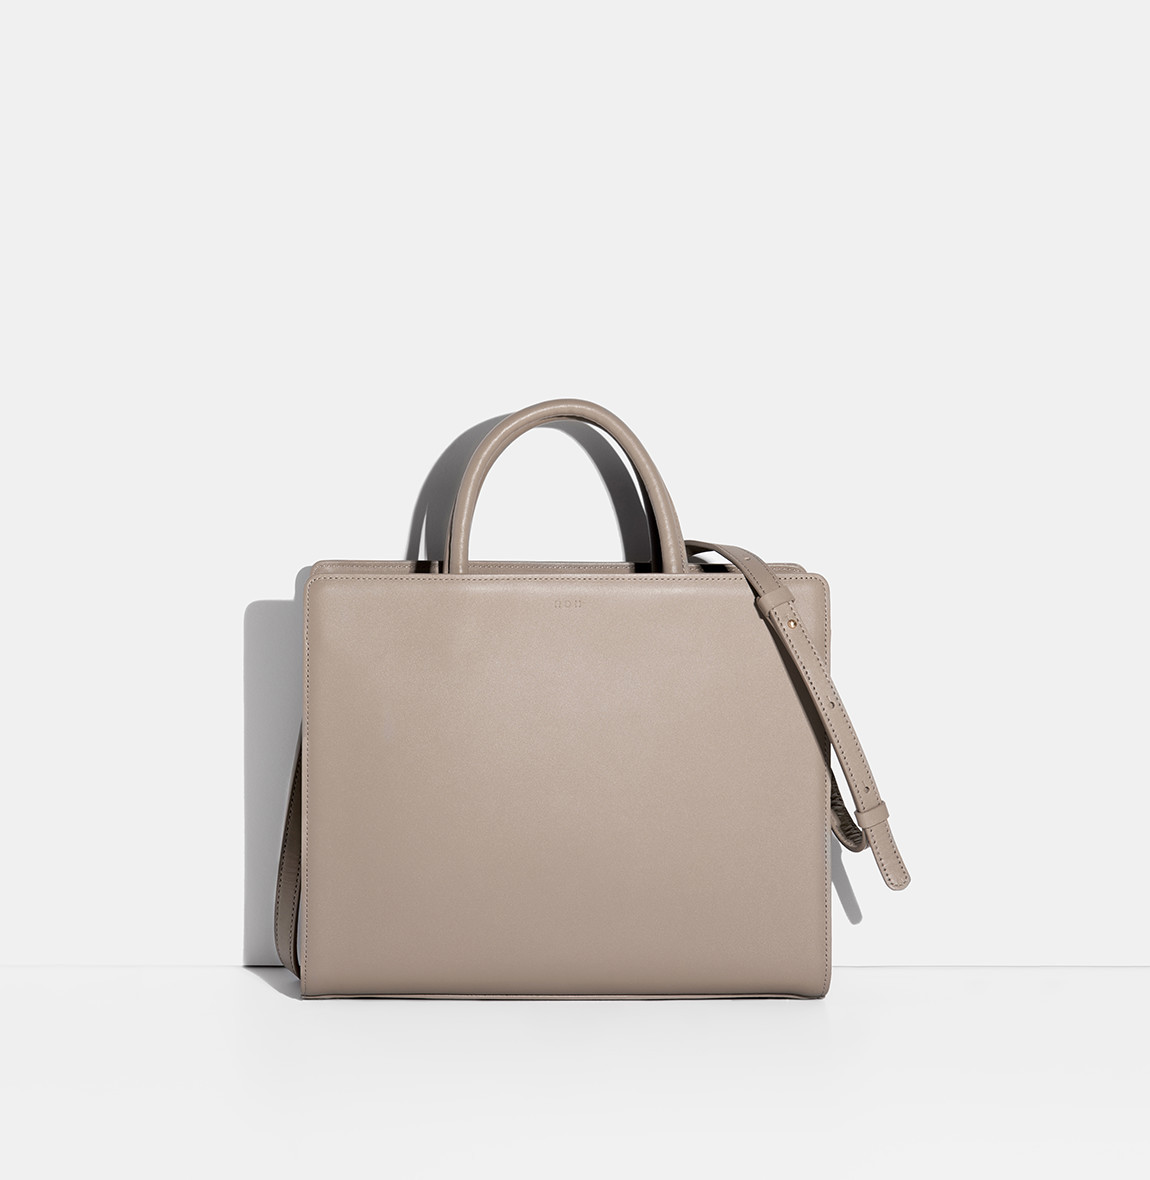 Square Tote Bag Beige